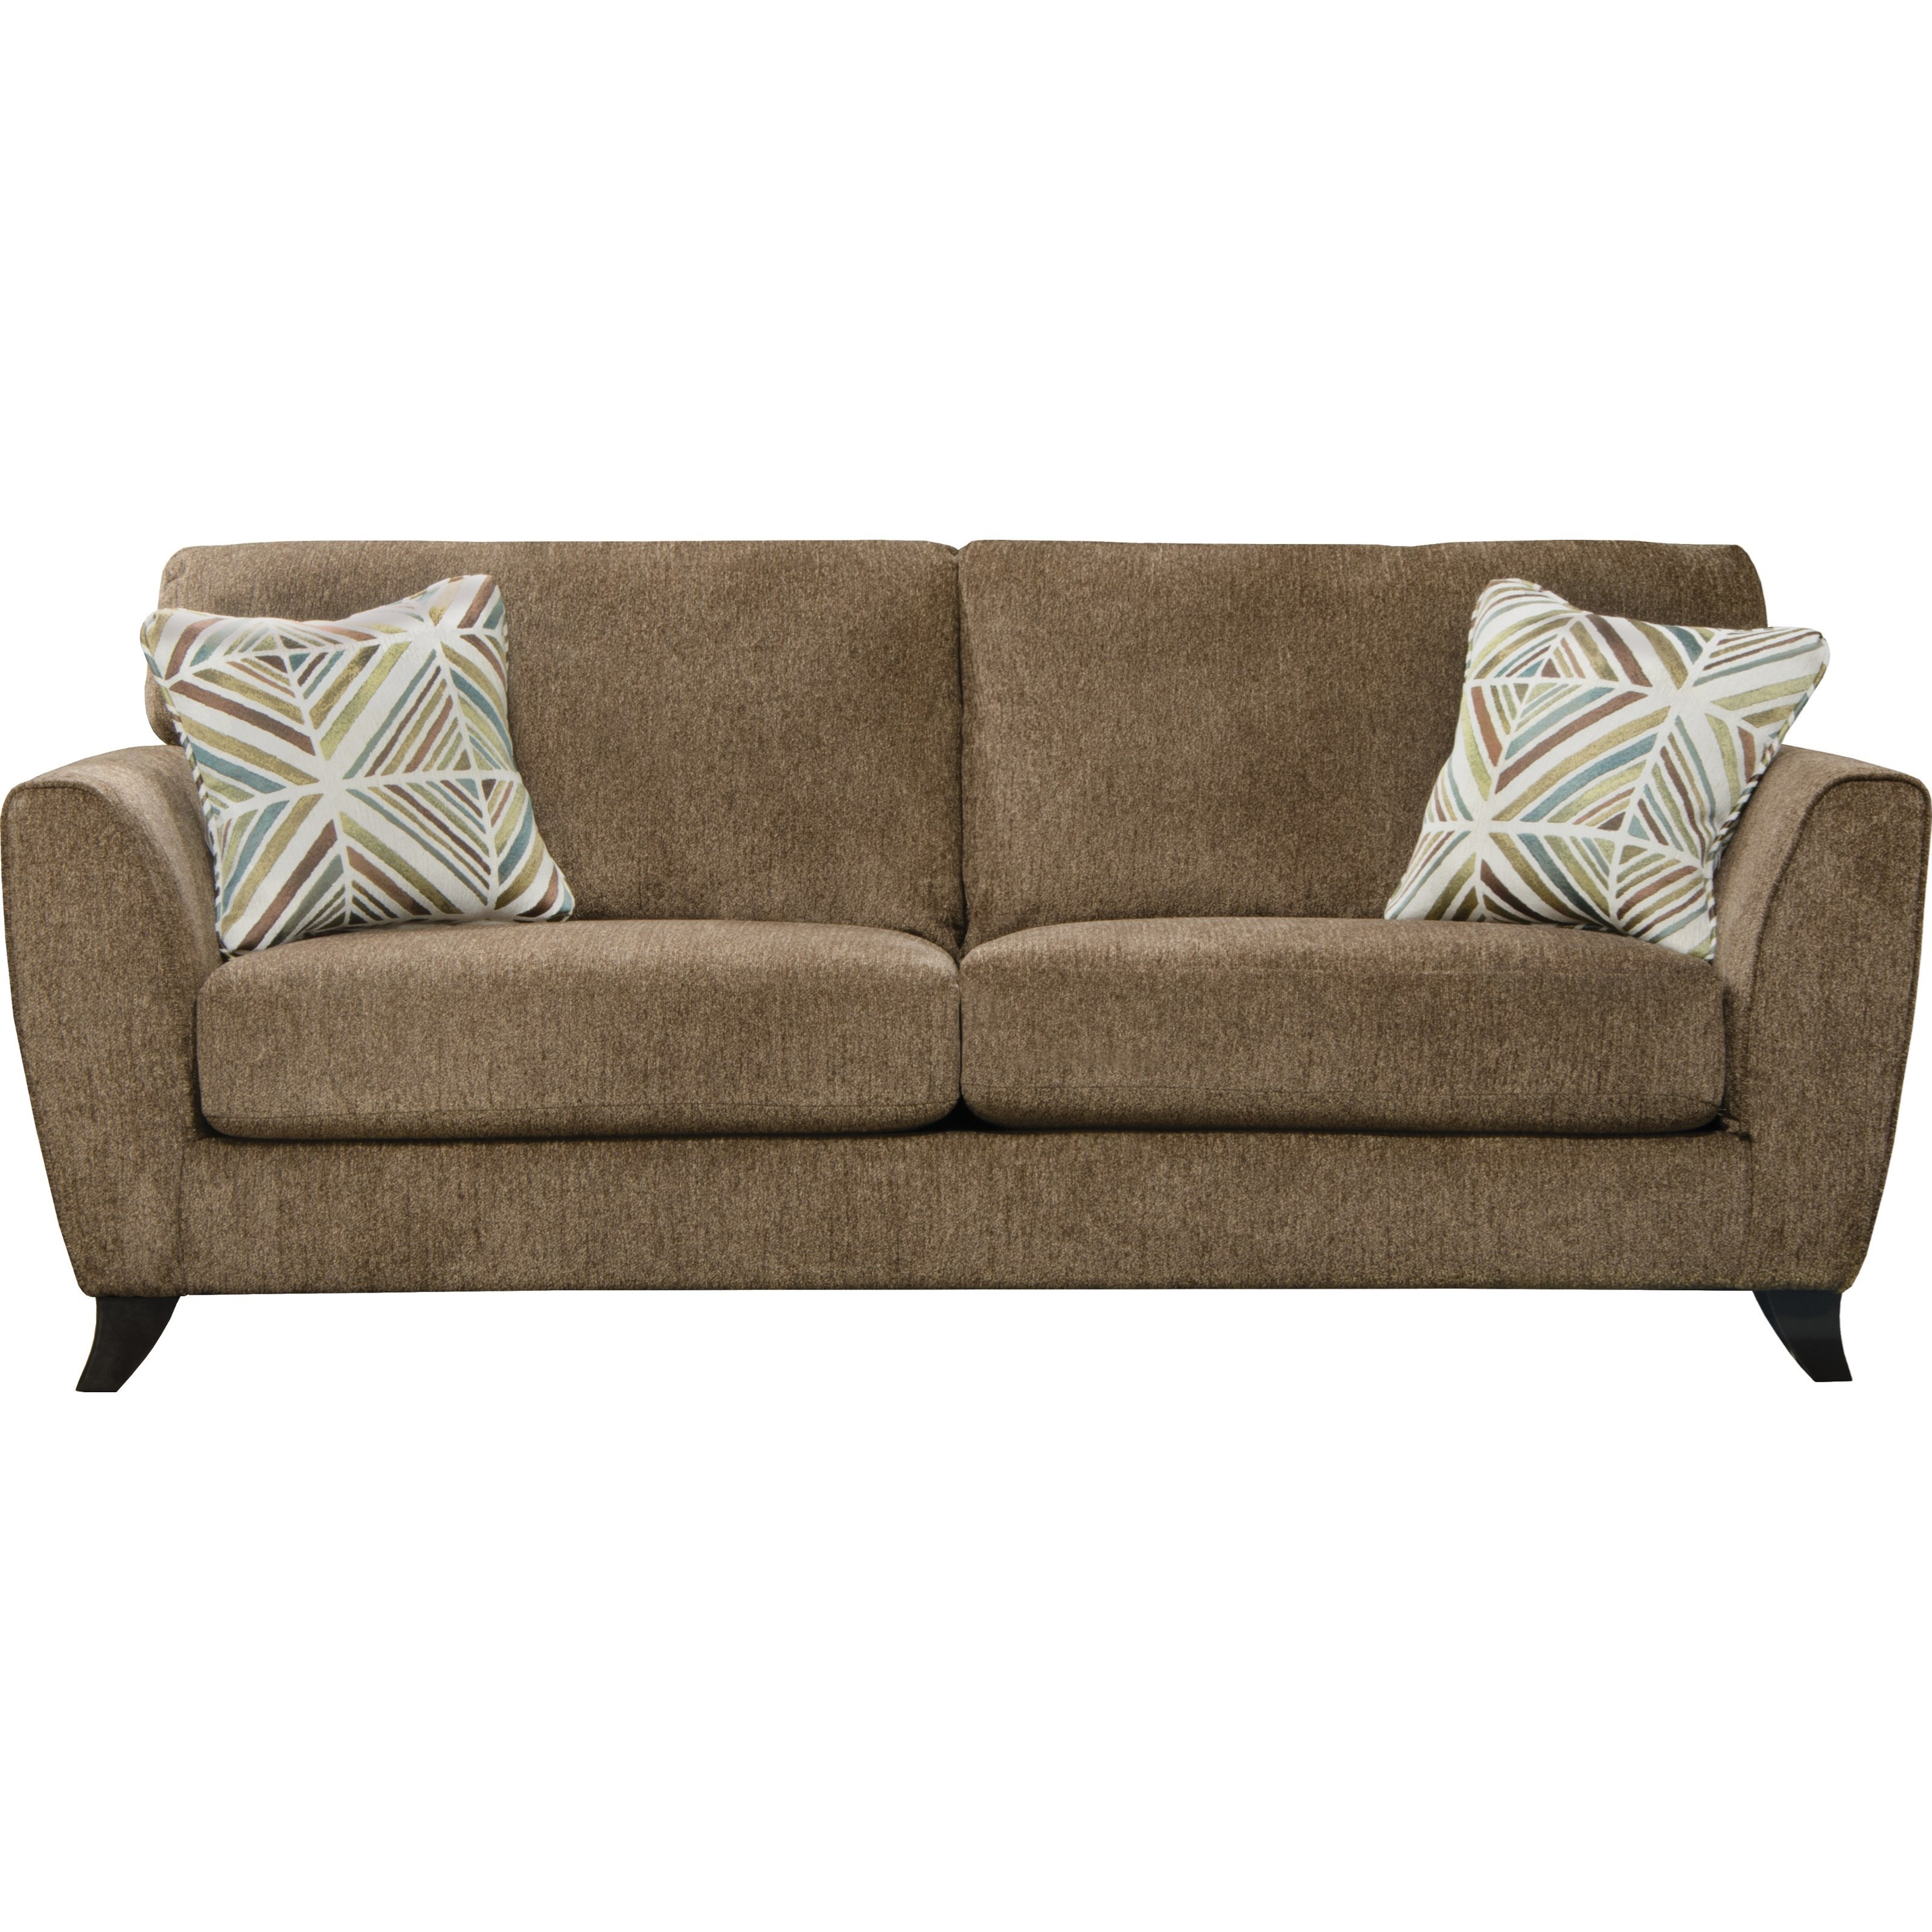 Pebbles Sofa by Jackson Furniture at EFO Furniture Outlet